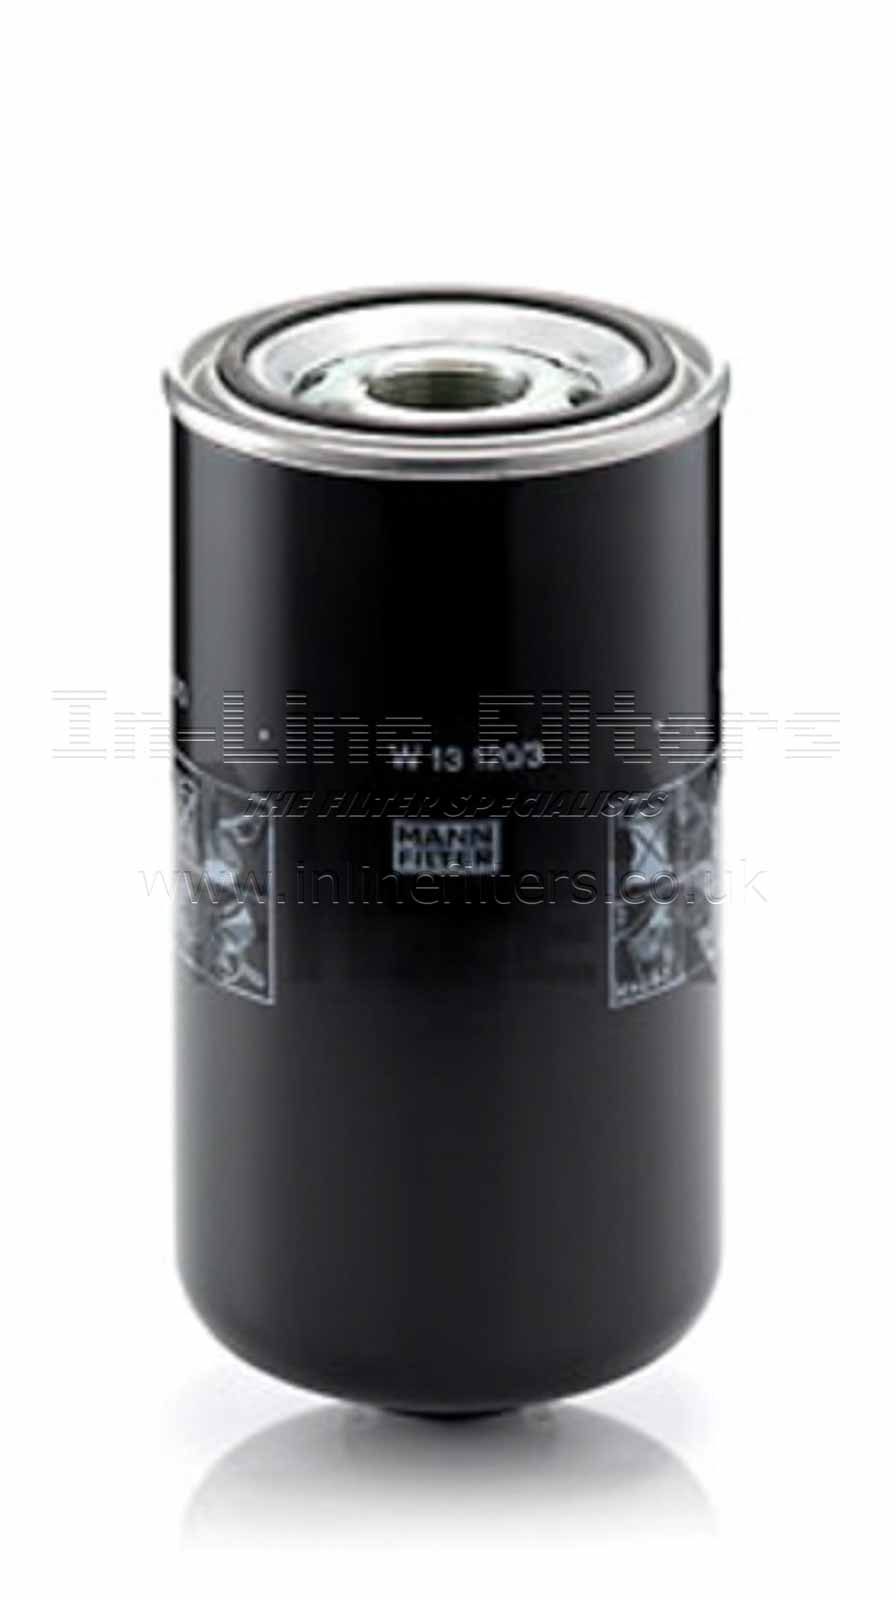 FMH-W13120-3 FILTER-Lube(Brand Specific-Mann W13120/3) - Click Image to Close